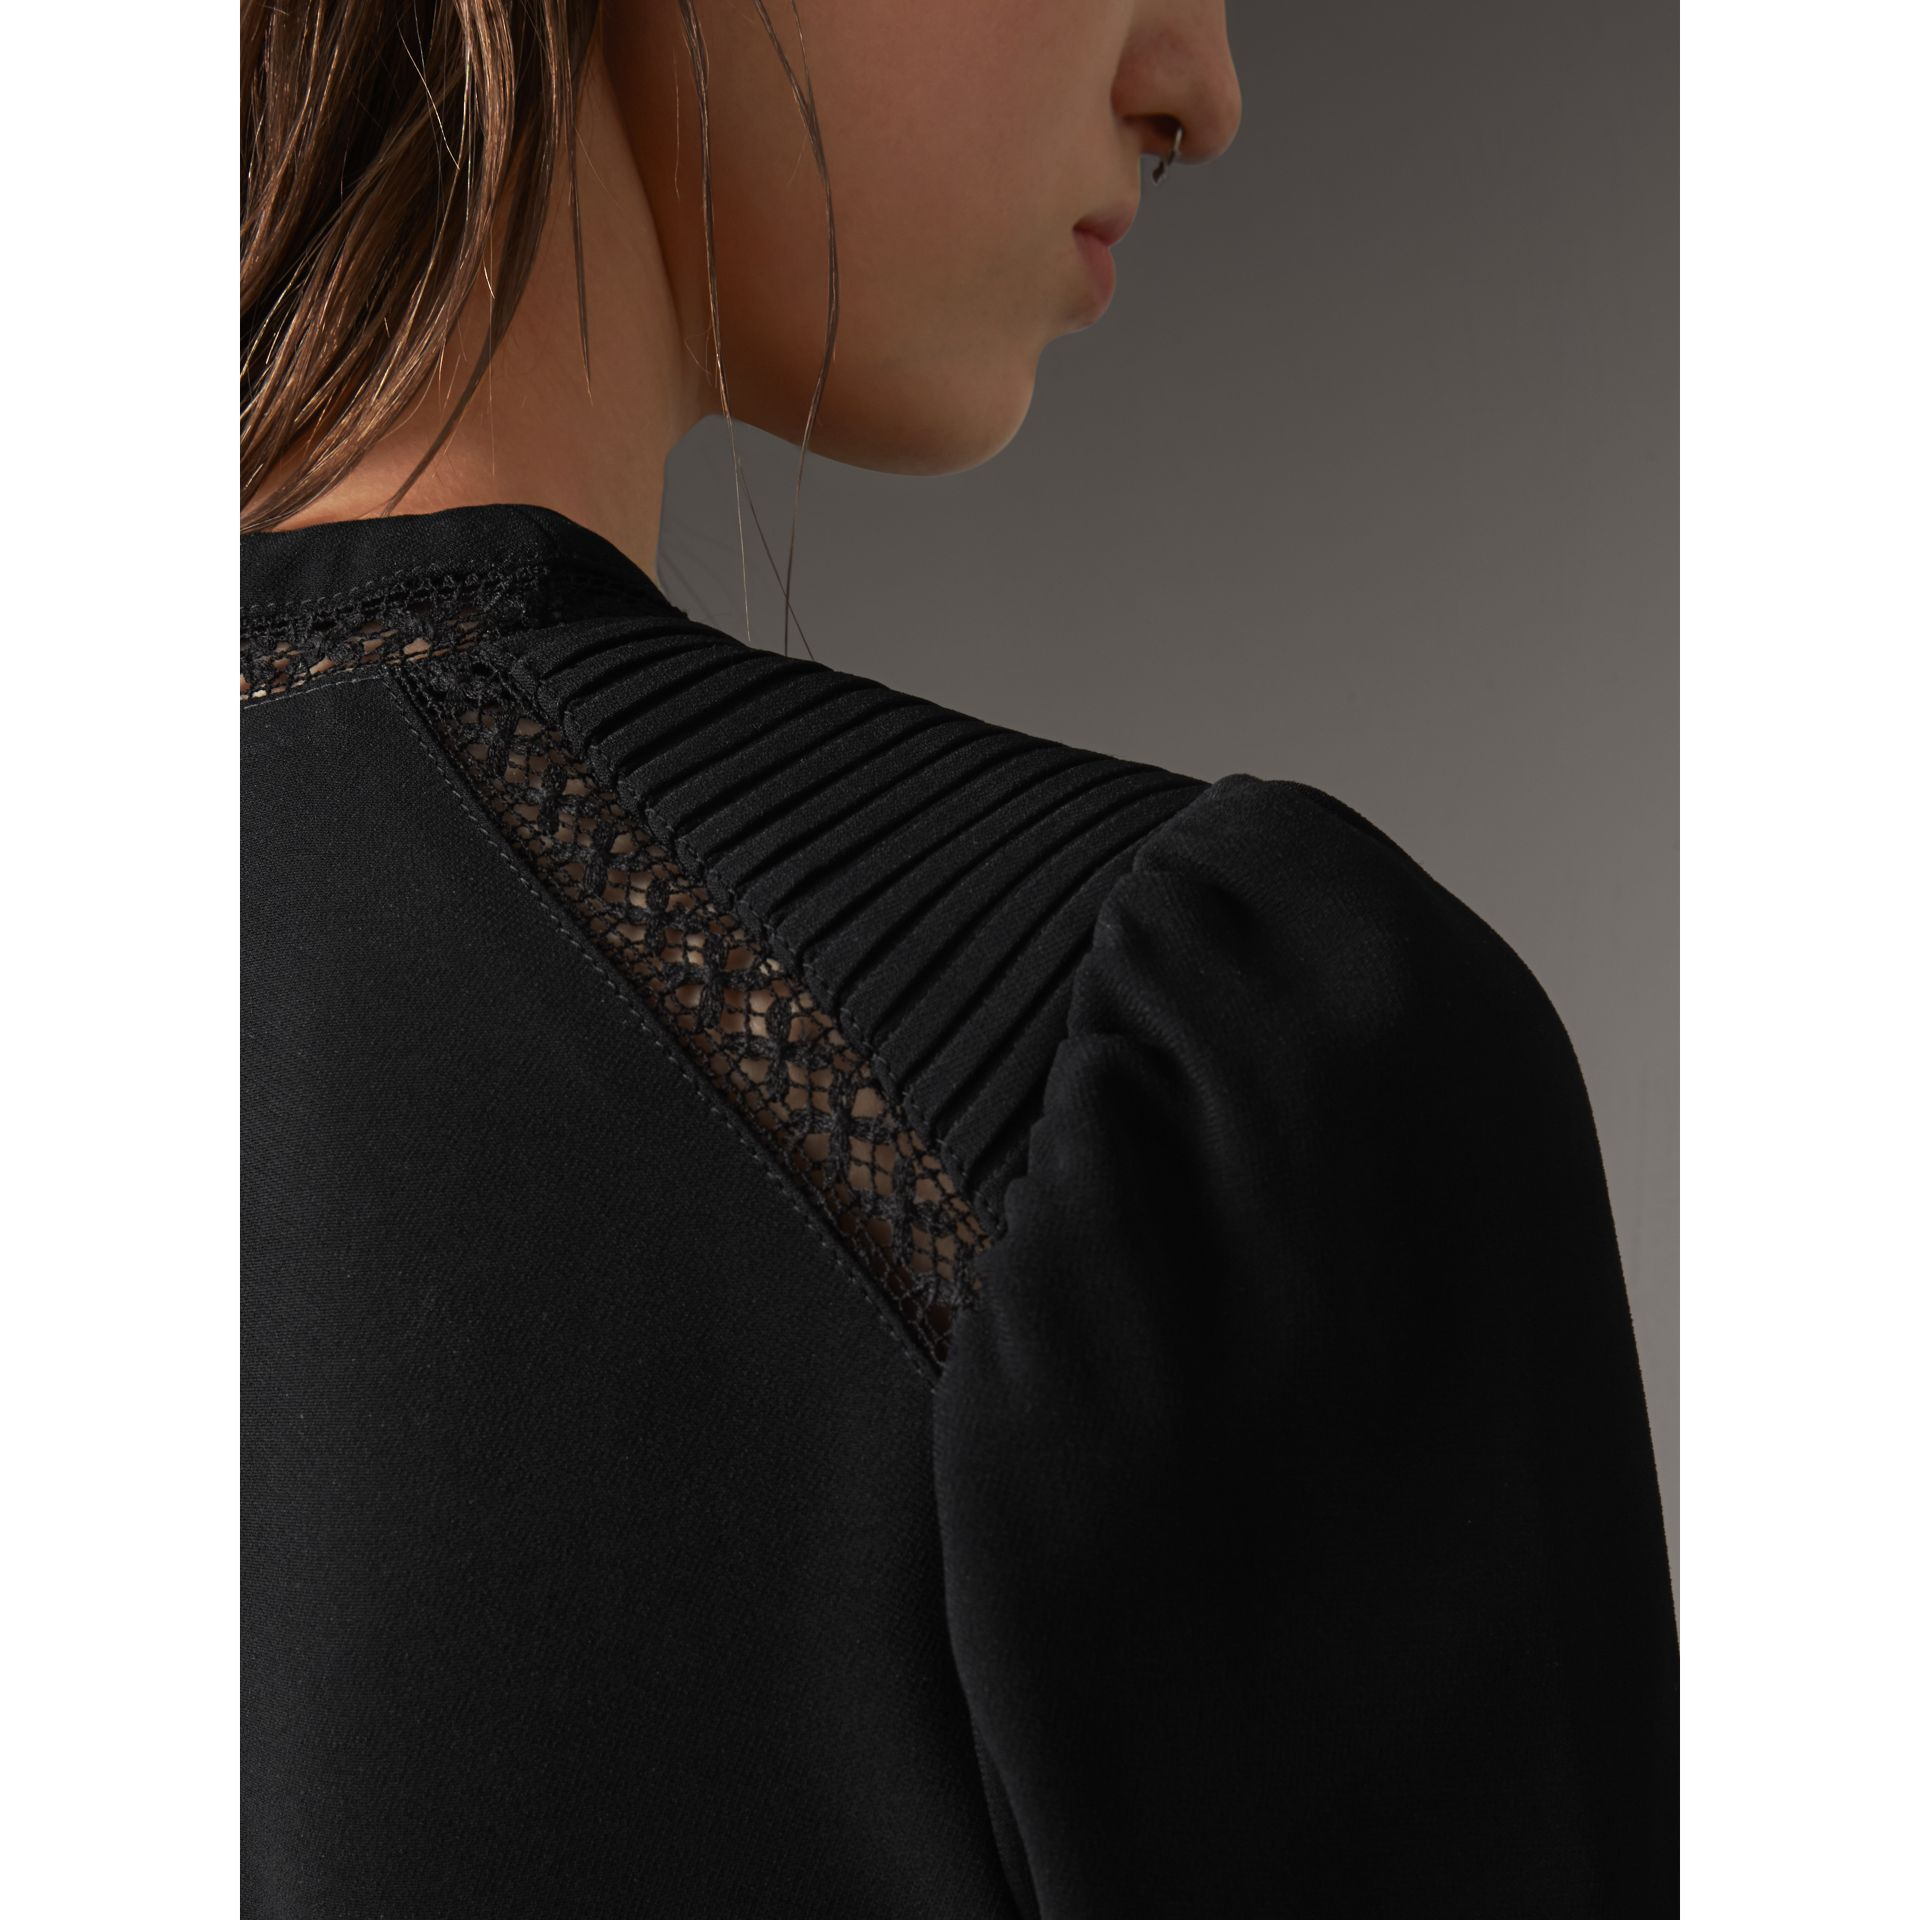 Lace Insert Fitted Dress in Black - Women | Burberry - gallery image 5